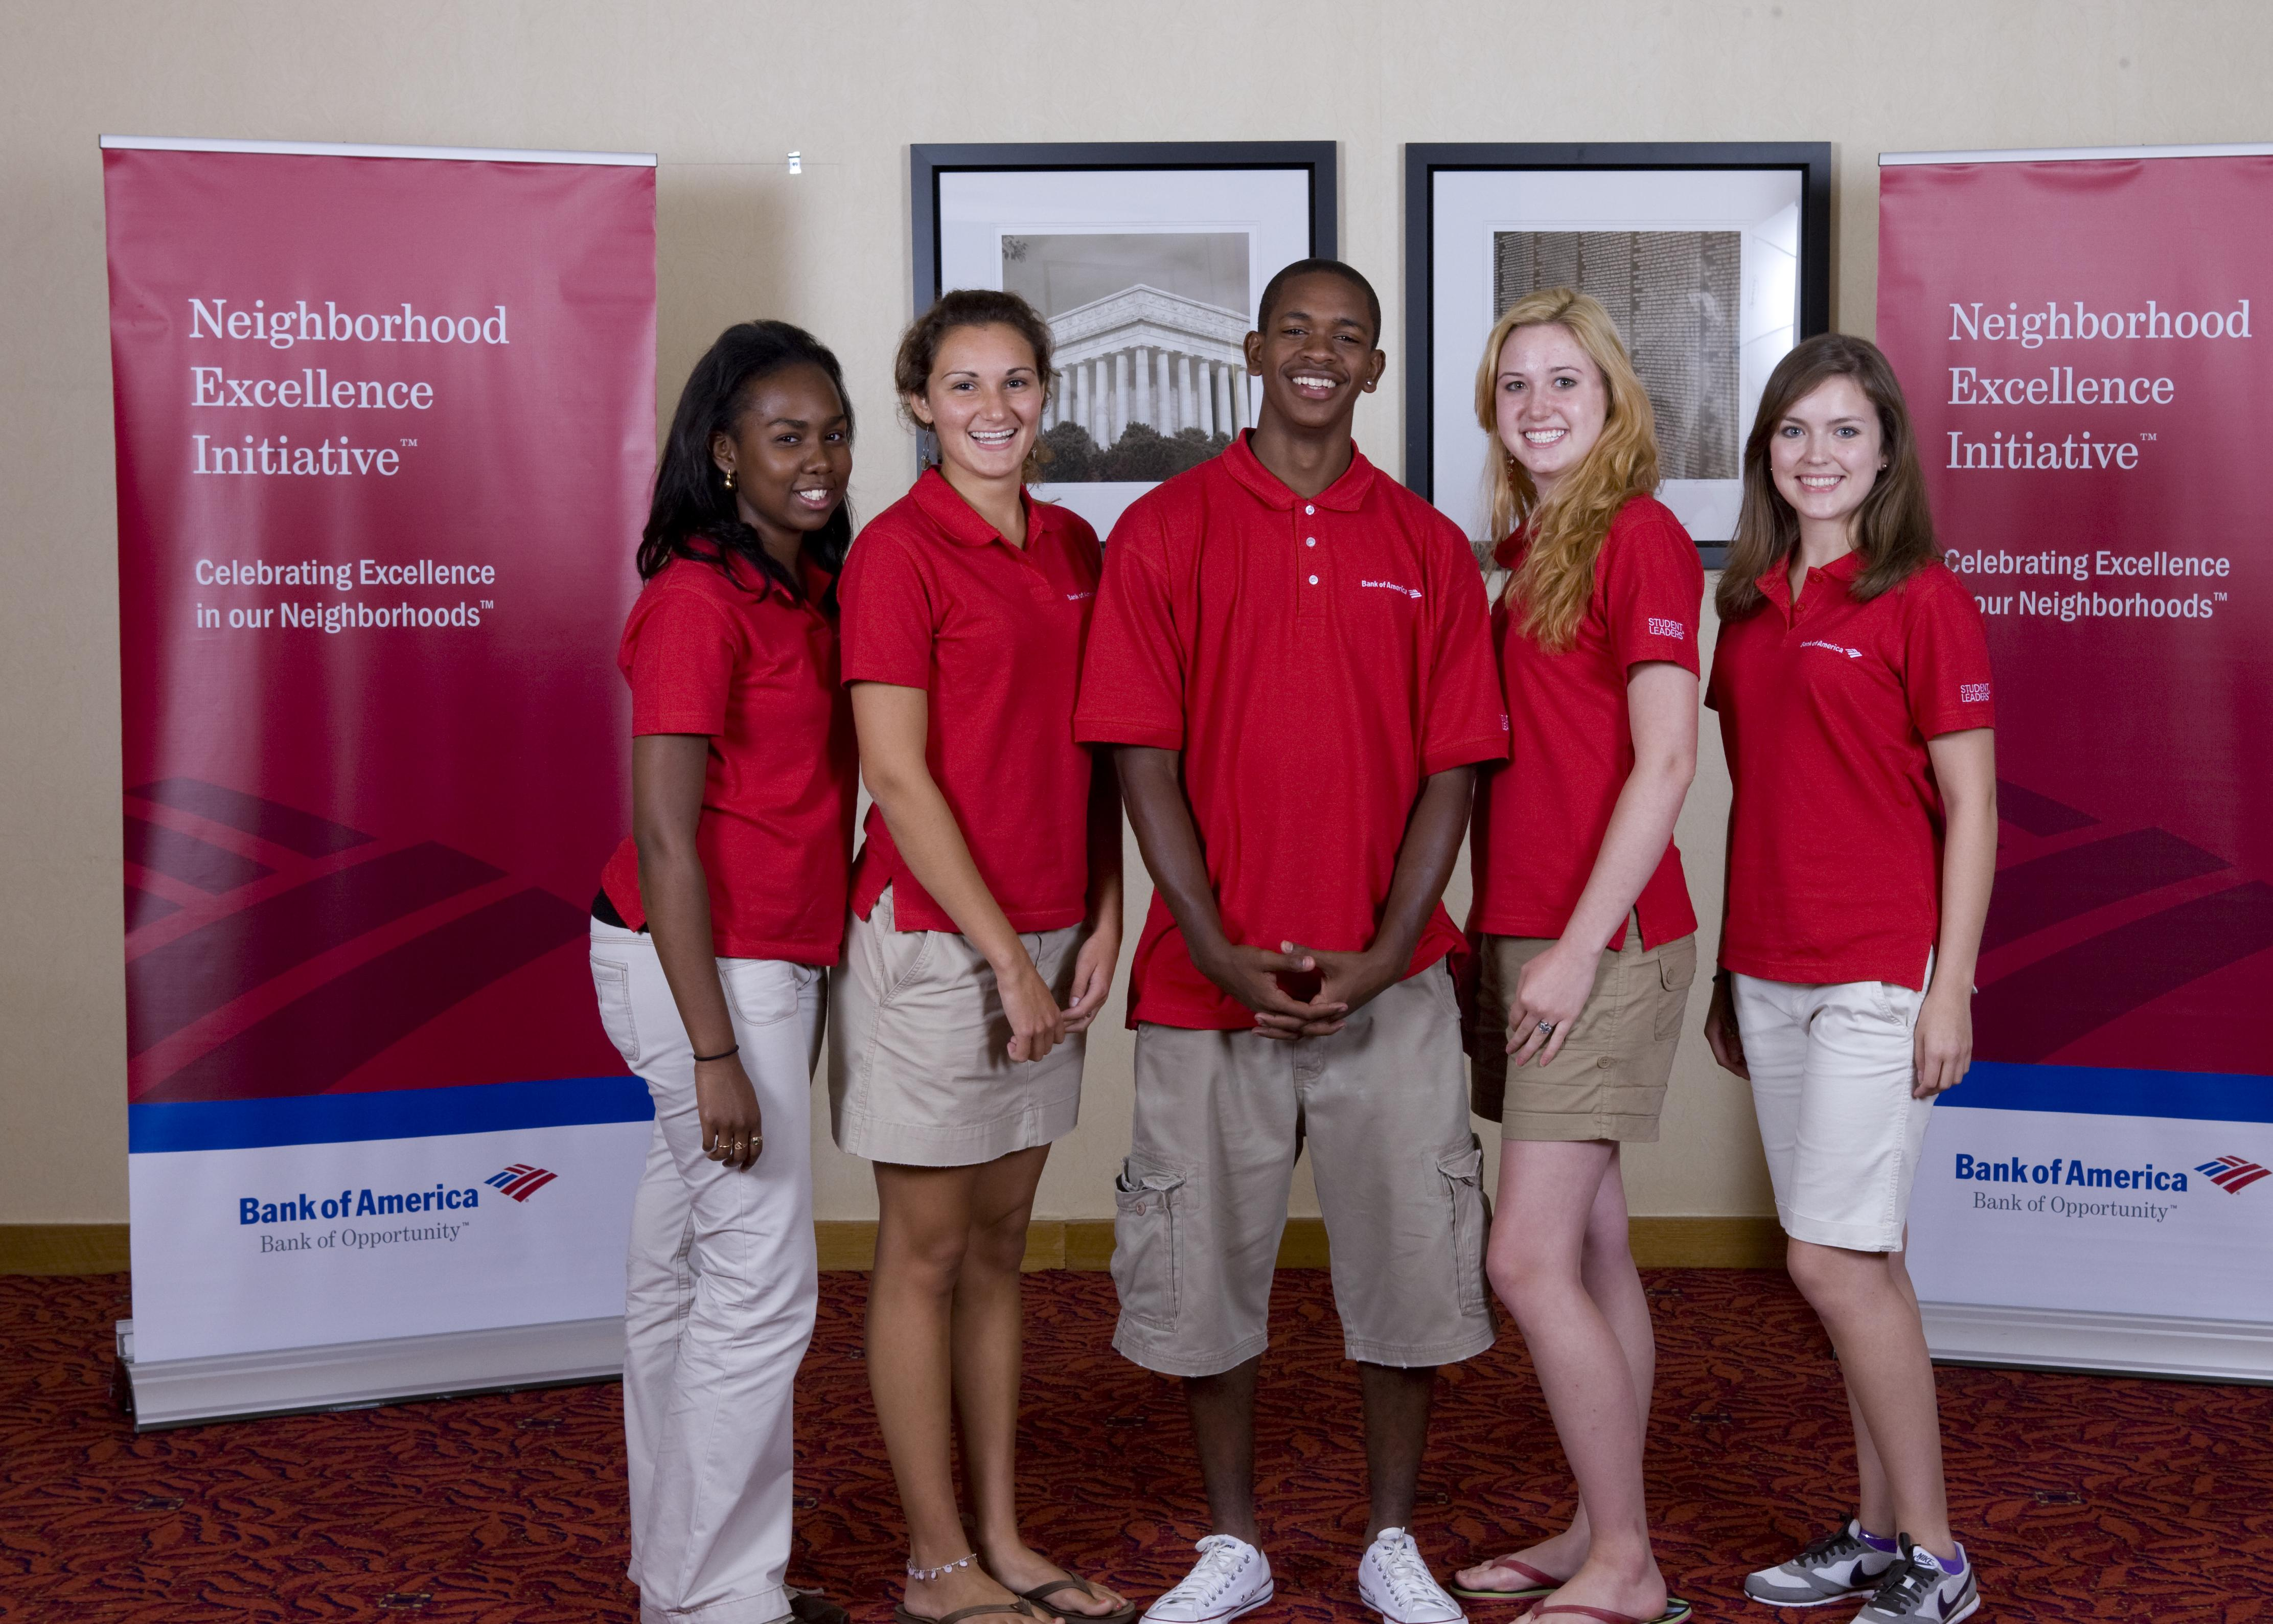 L to R: Shanice Sandiford, Monica Wilson, Anthony Williams, Success Won't Wait's Ashley McNeill, and Julie Hall.